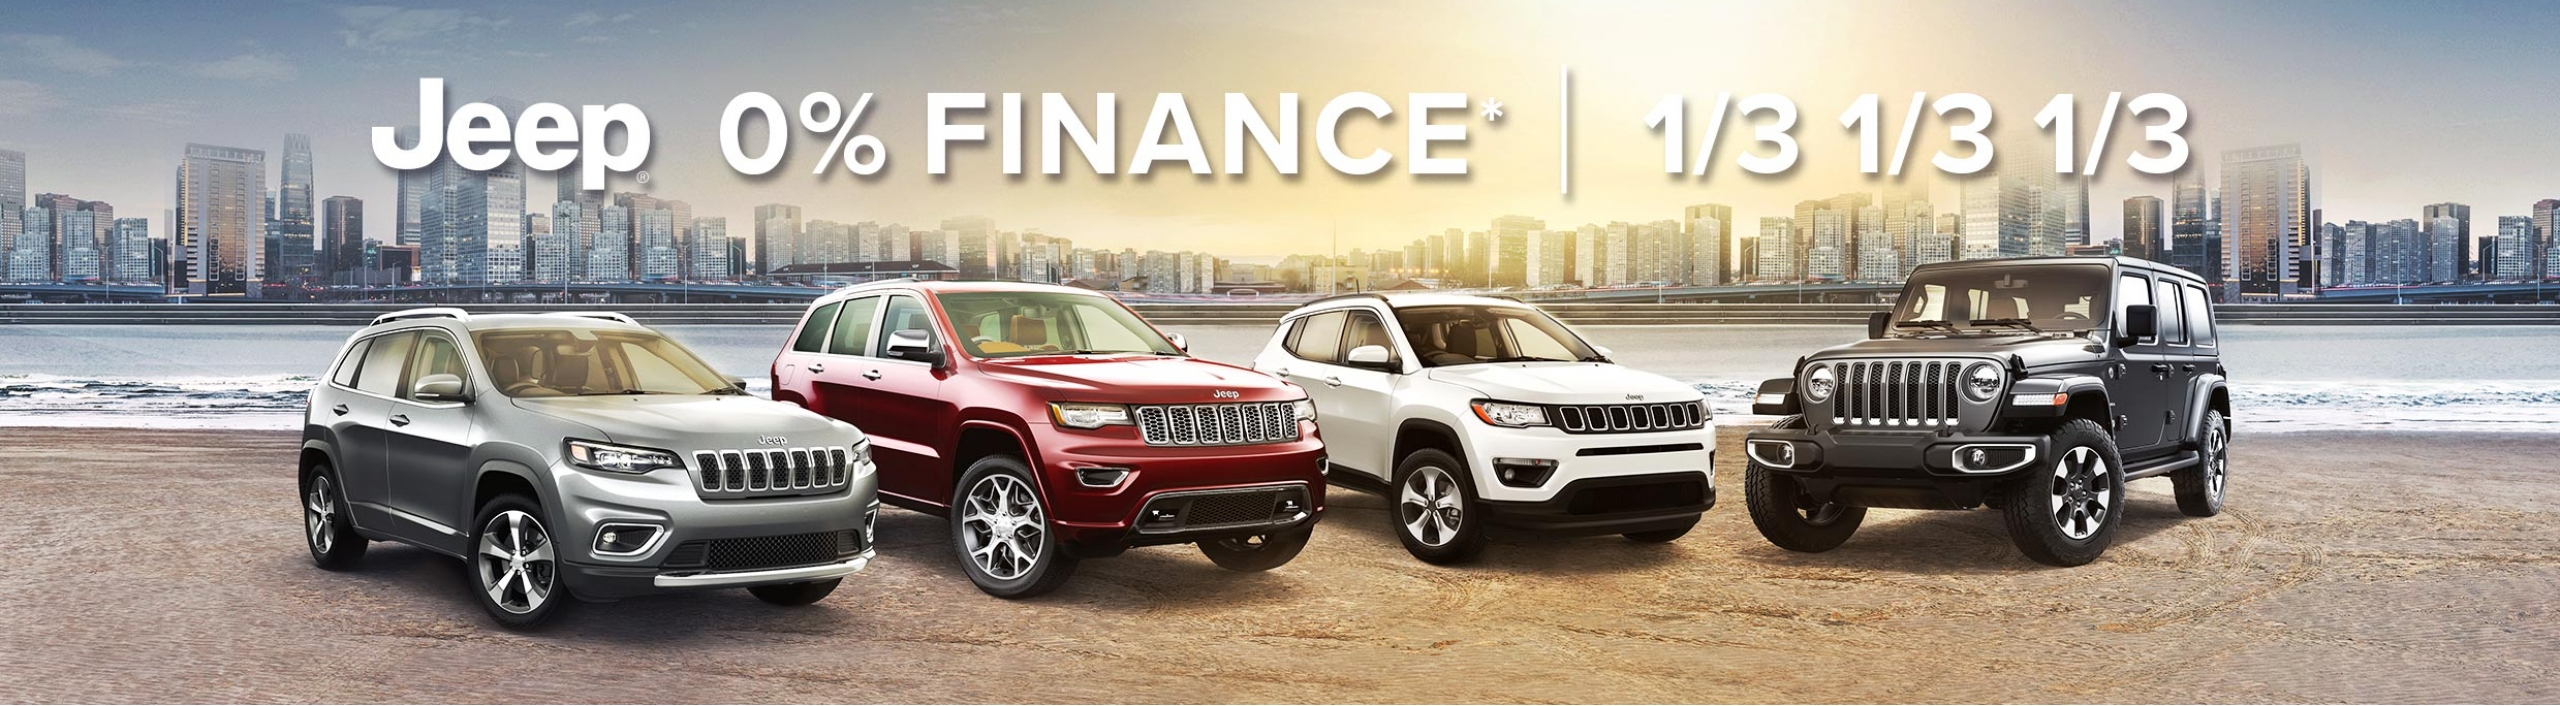 Jeep 0 Finance - Range